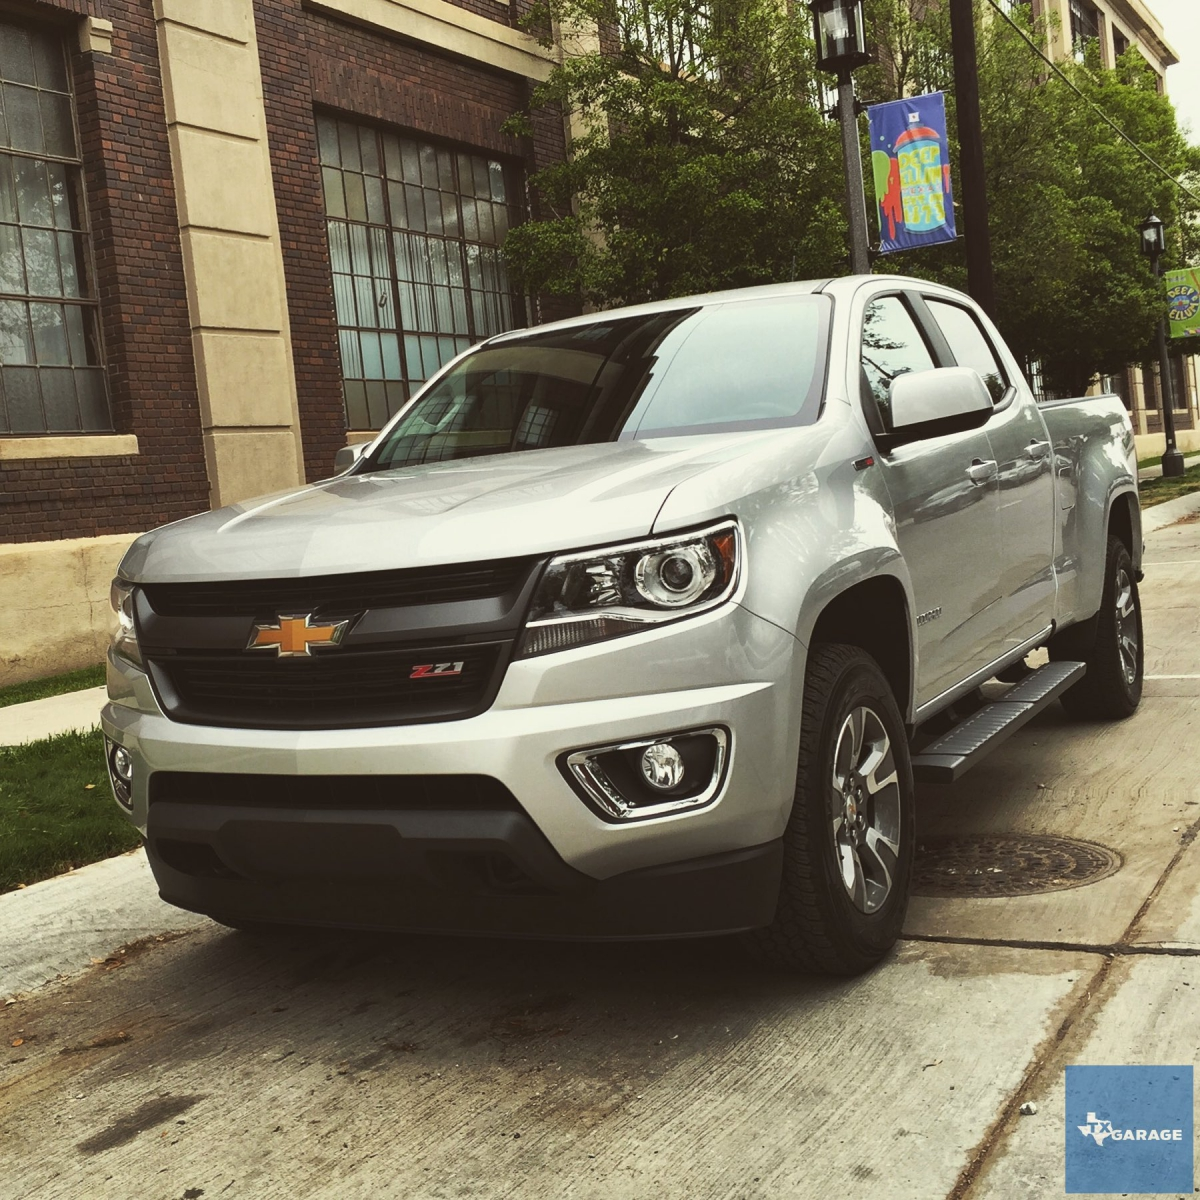 Chevy Dealership Dallas Tx >> 2016 CHEVY COLORADO DIESEL 4X4: (MORE THAN) FAIR TO MIDLAND | txGarage